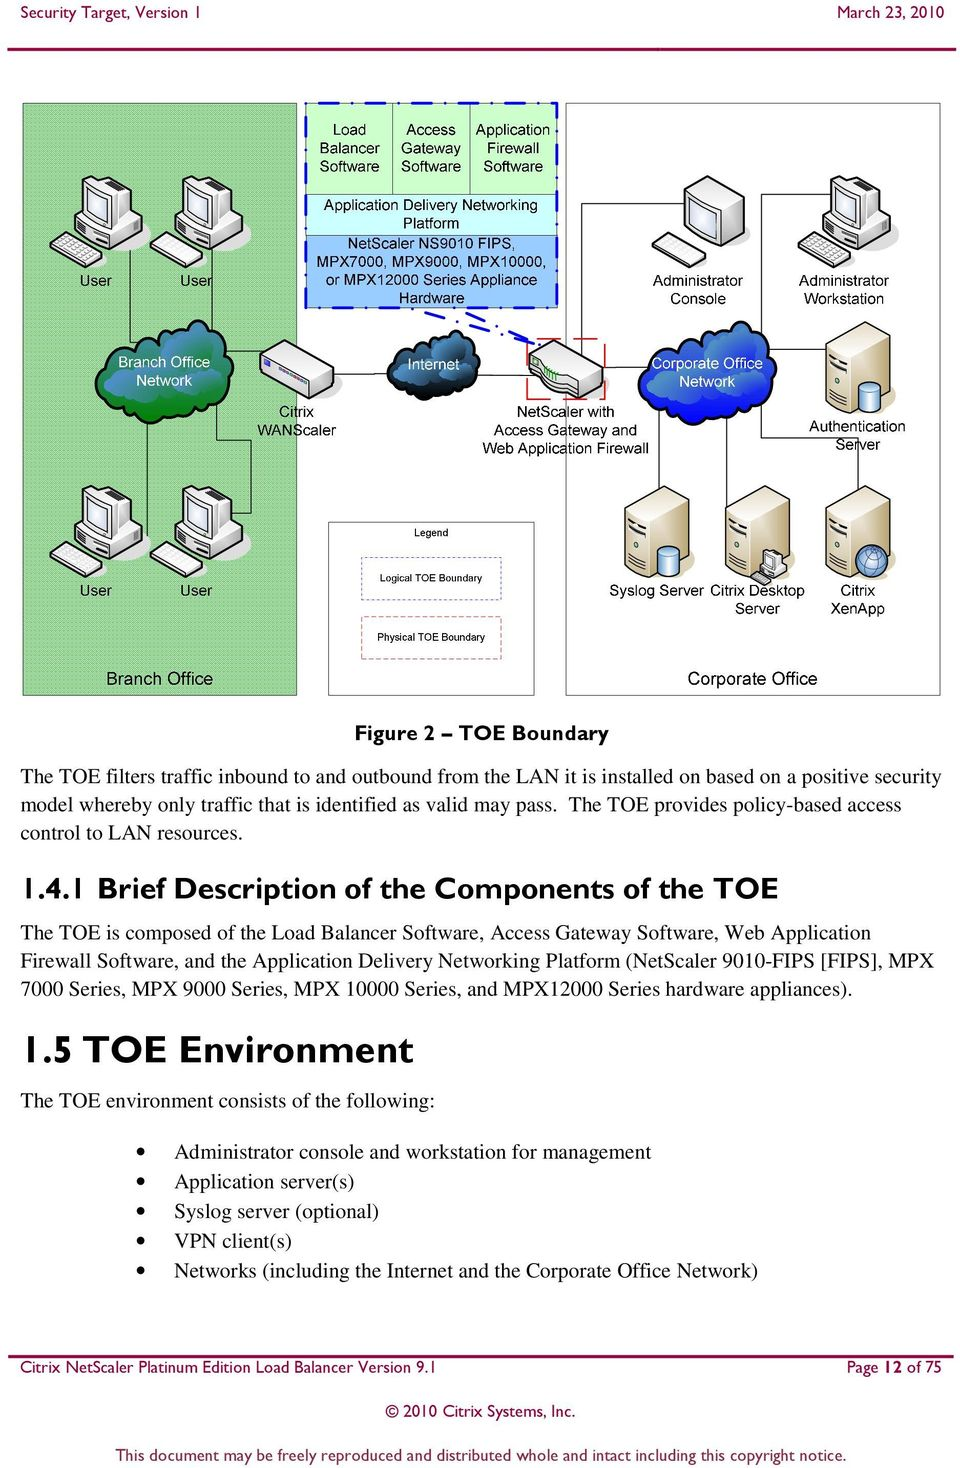 1 Brief Description of the Components of the TOE The TOE is composed of the Load Balancer Software, Access Gateway Software, Web Application Firewall Software, and the Application Delivery Networking